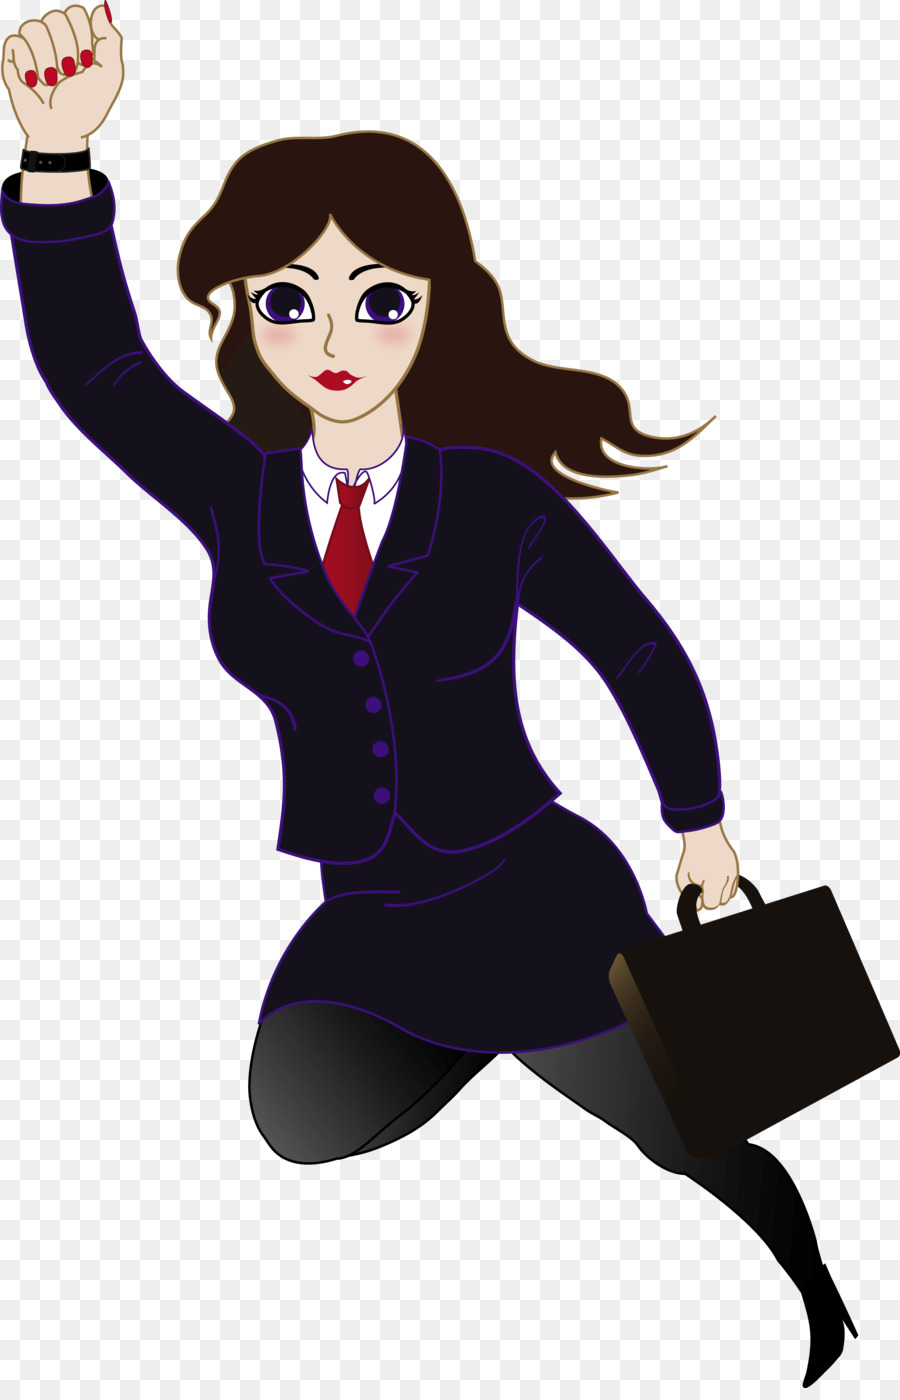 Career Woman Png - Career woman Businessperson Clip art - professional women png ...